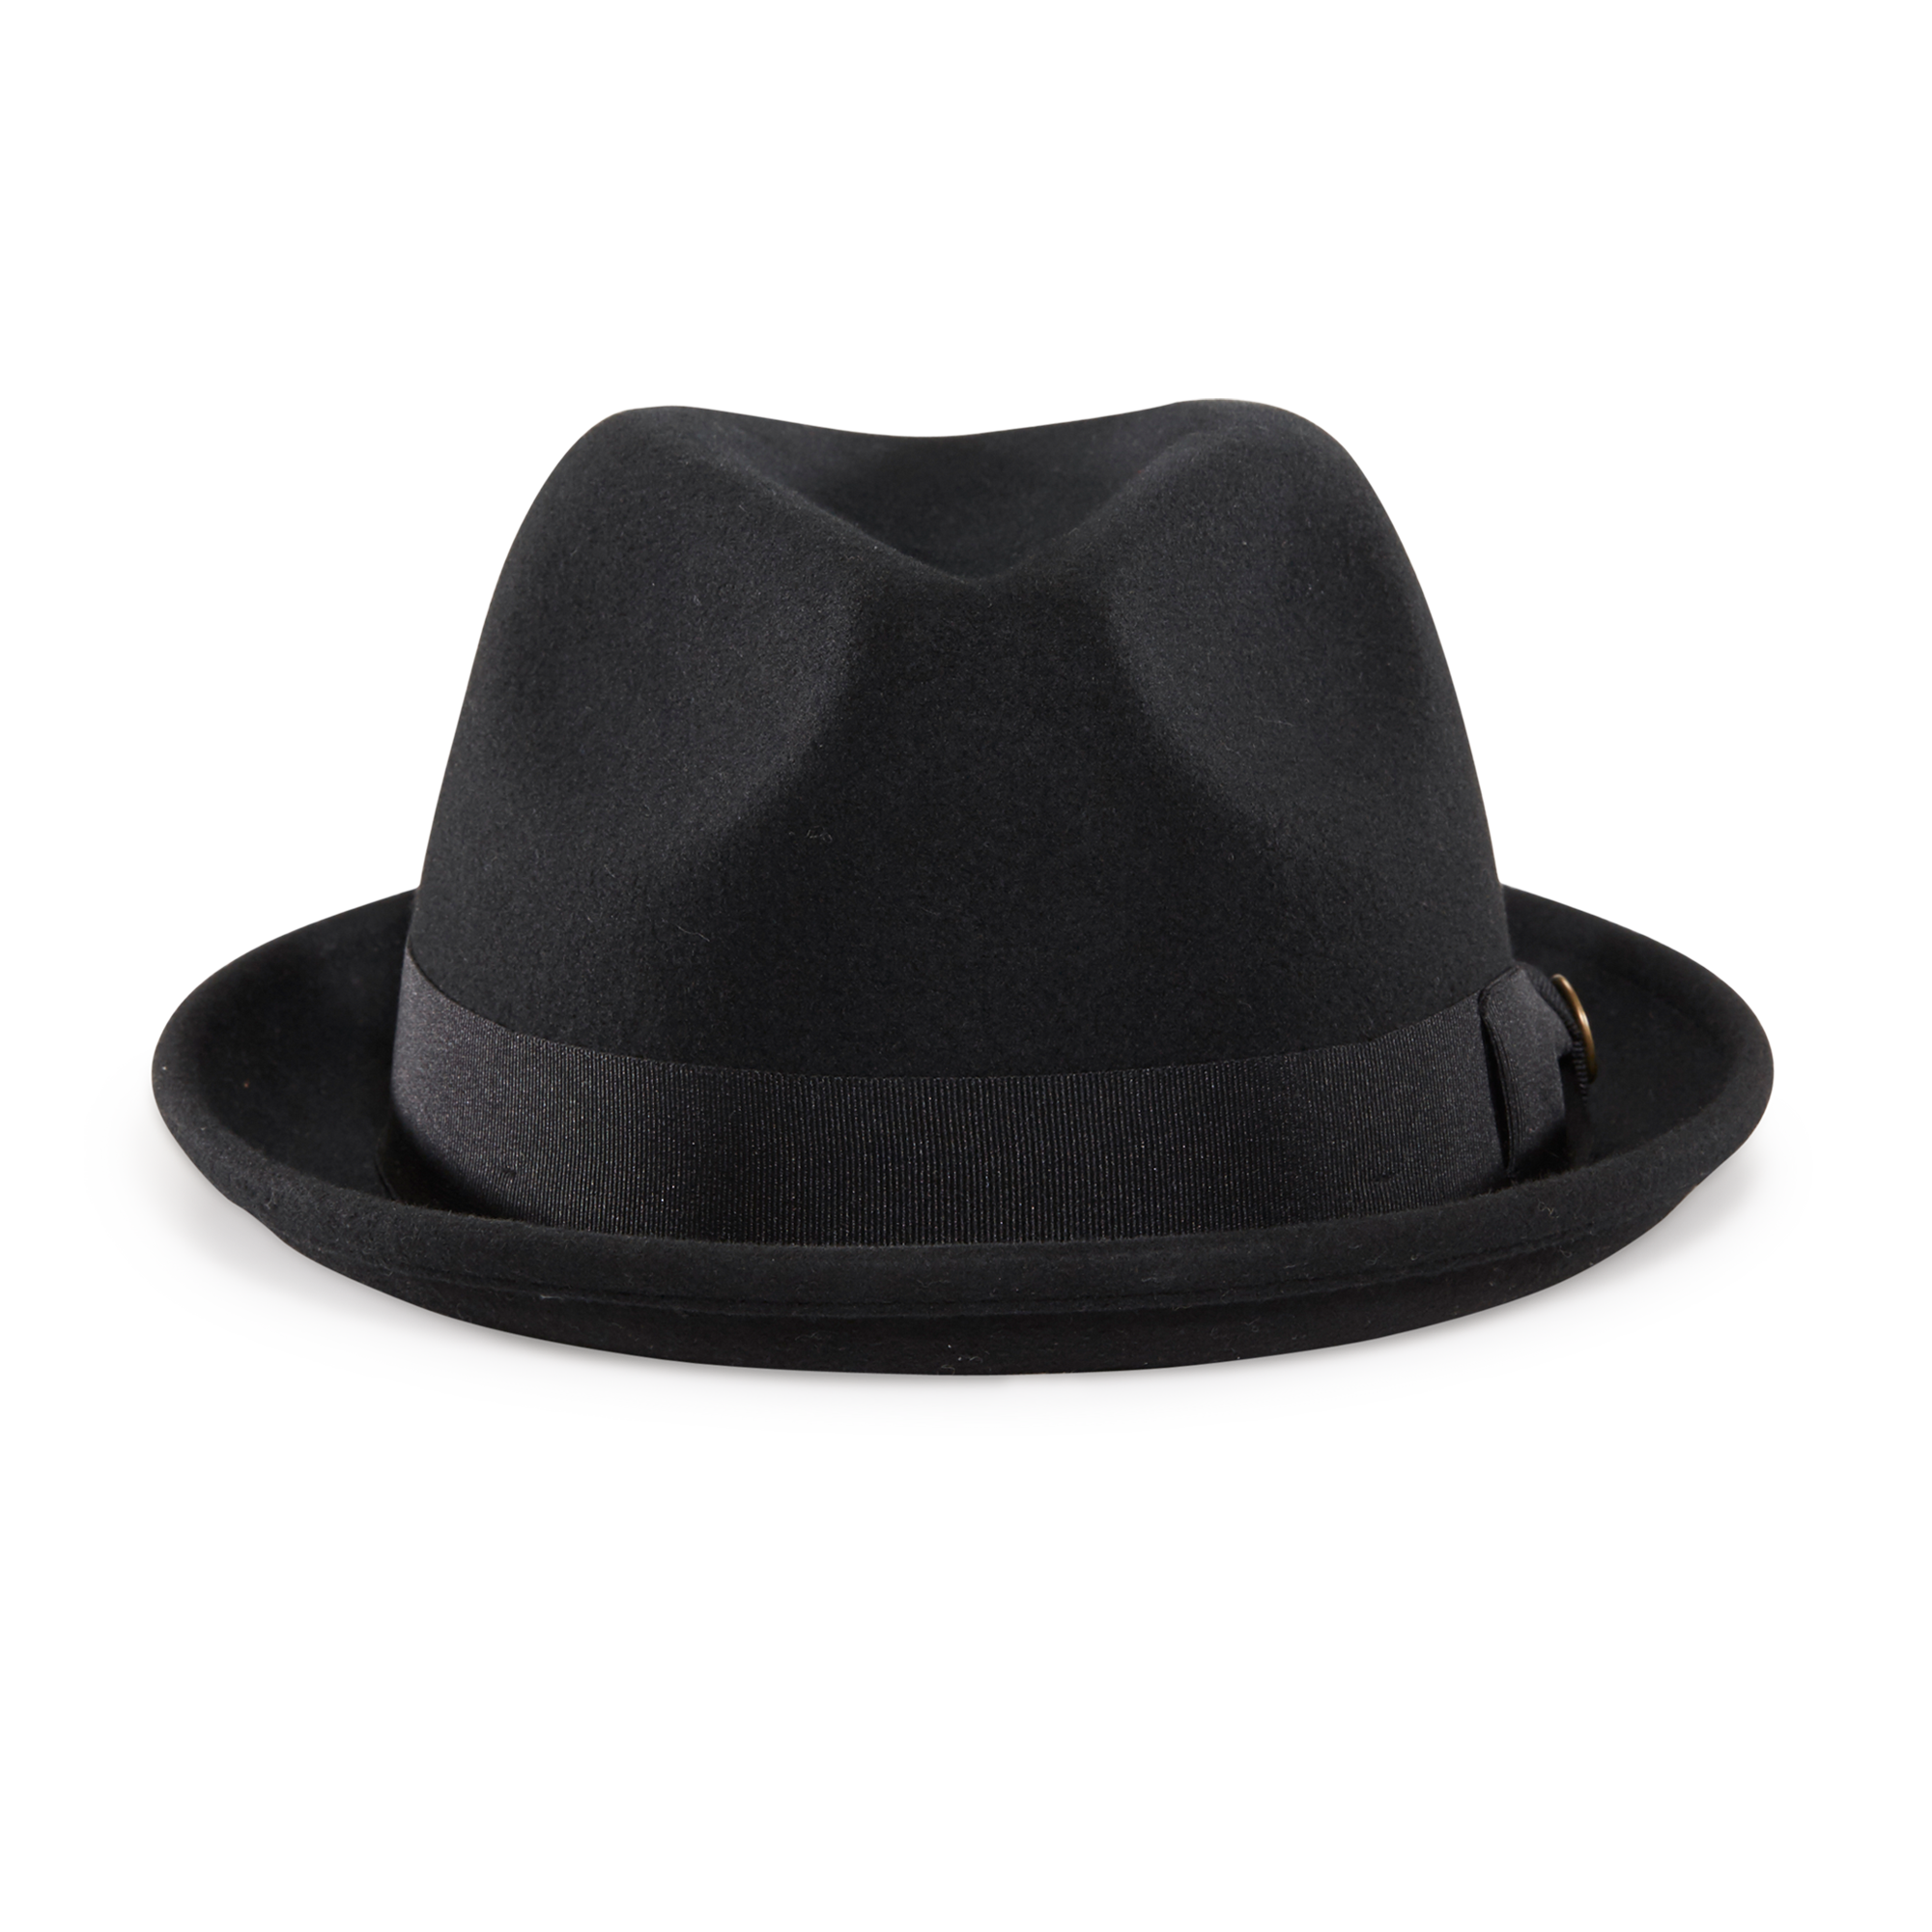 Black fedora png. Good boy felt hat